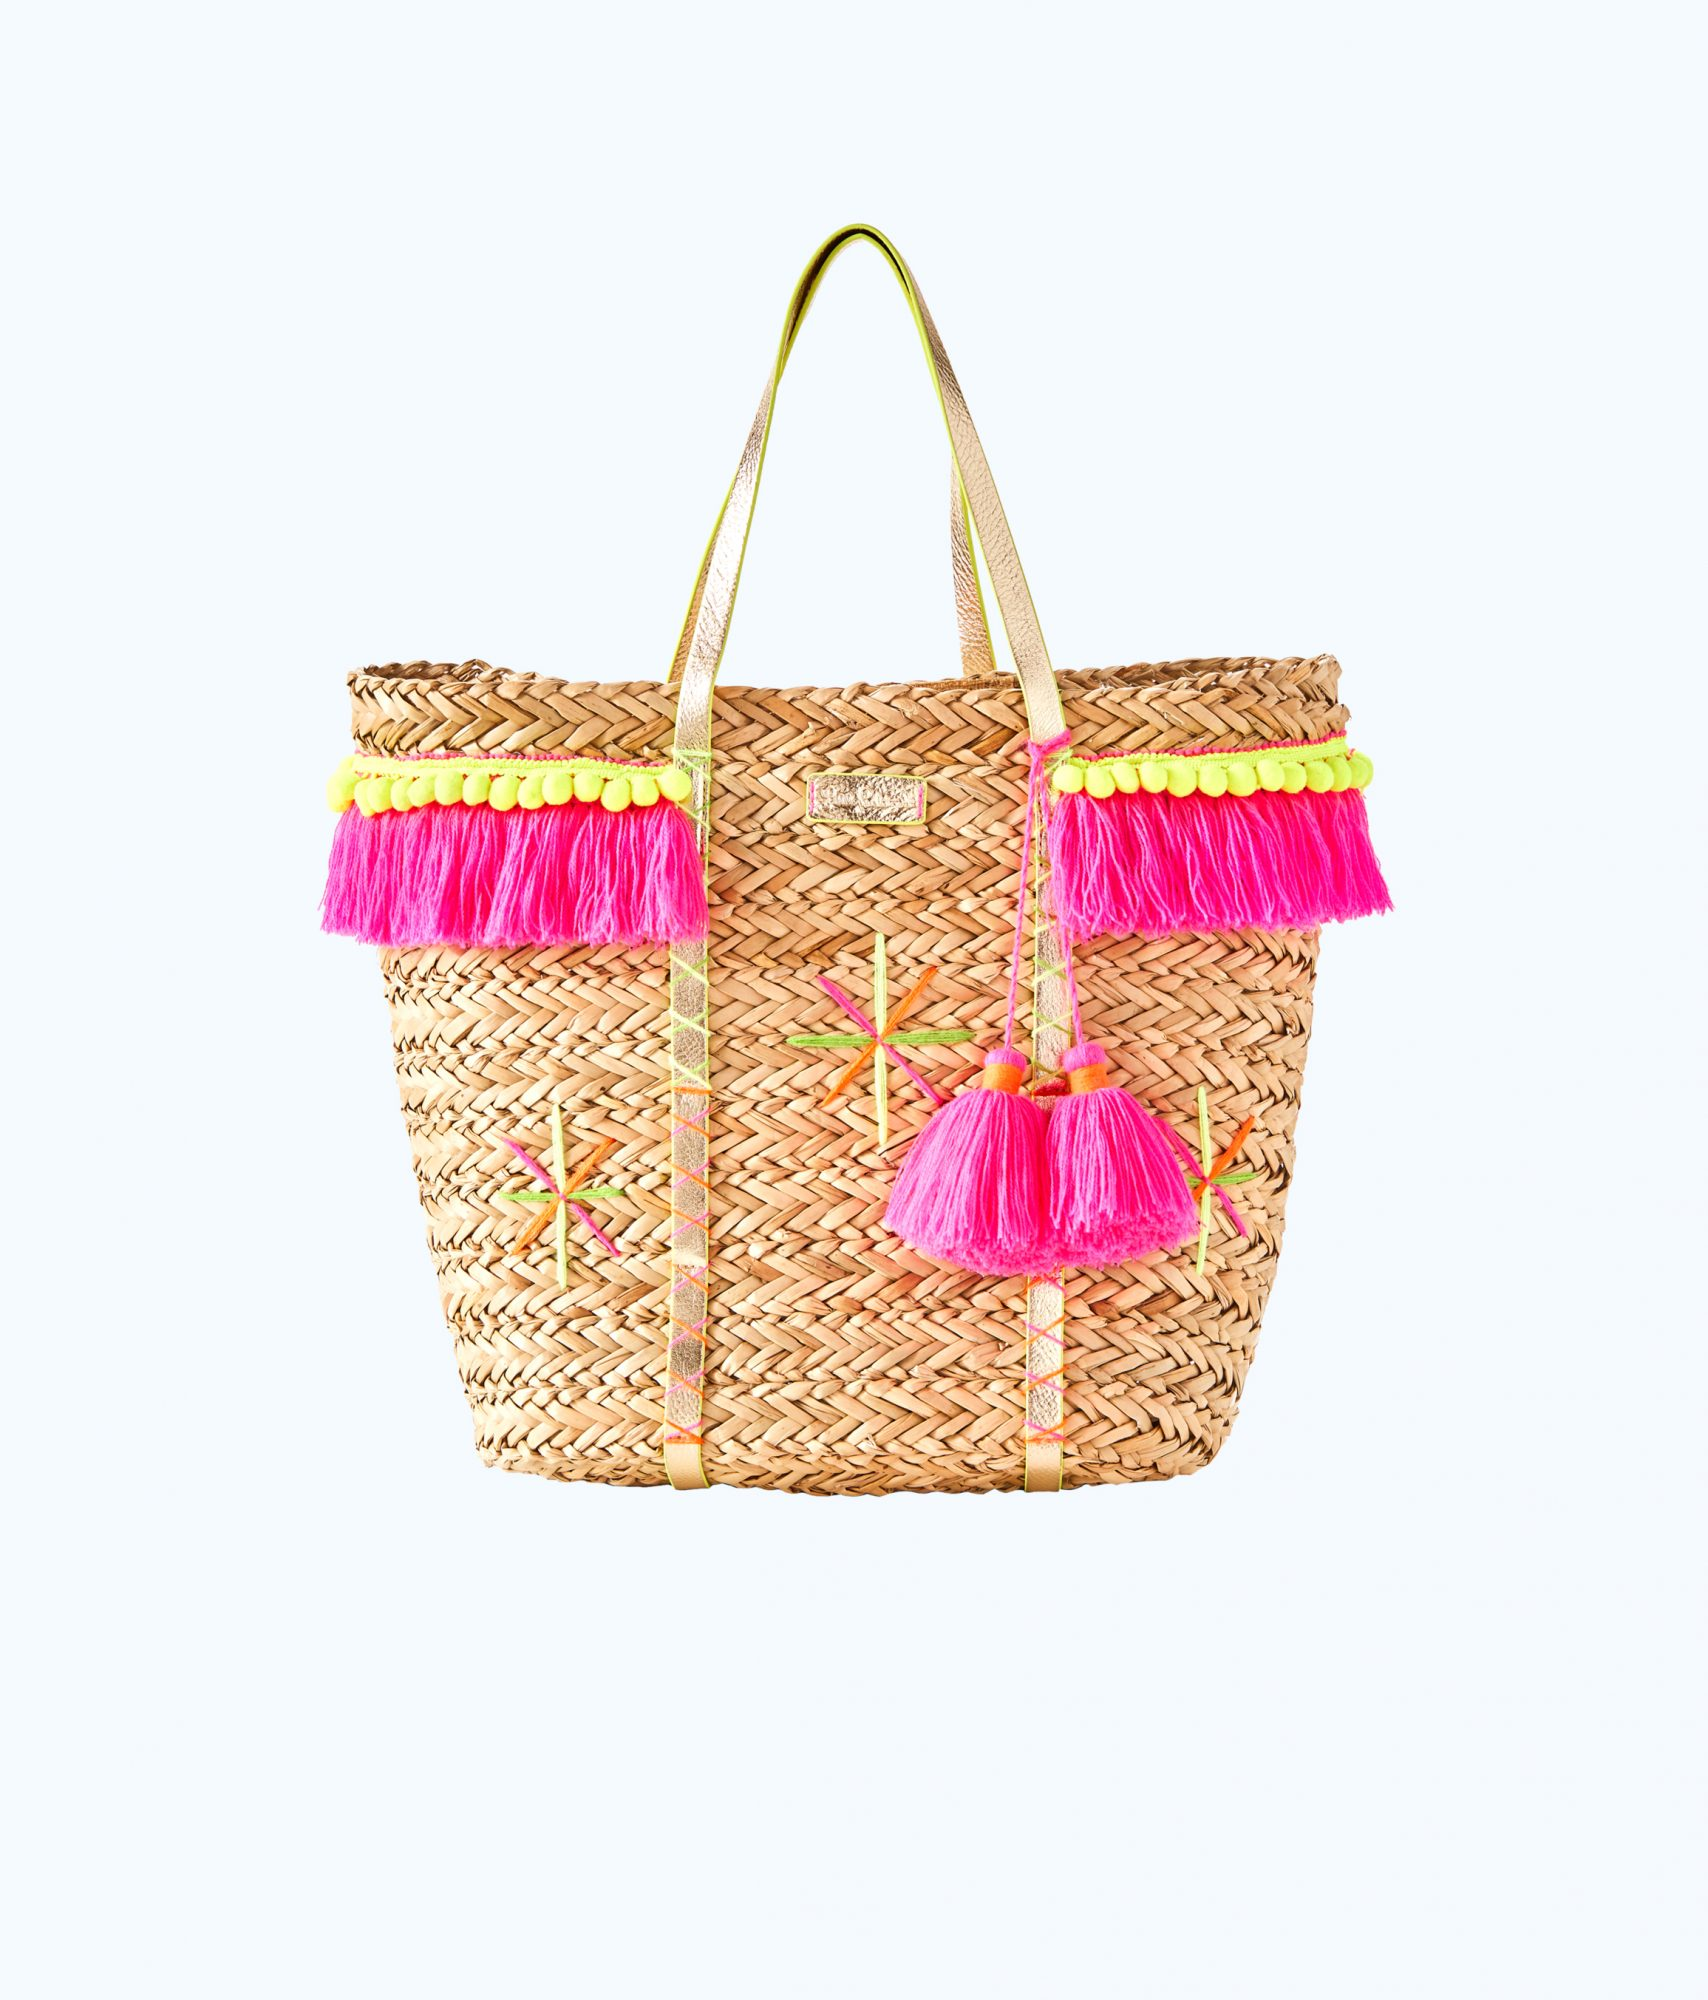 Lilly Pulitzer's Summer Collection Just Launched, Here's Everything We're Buying ASAP lilly-p-bag